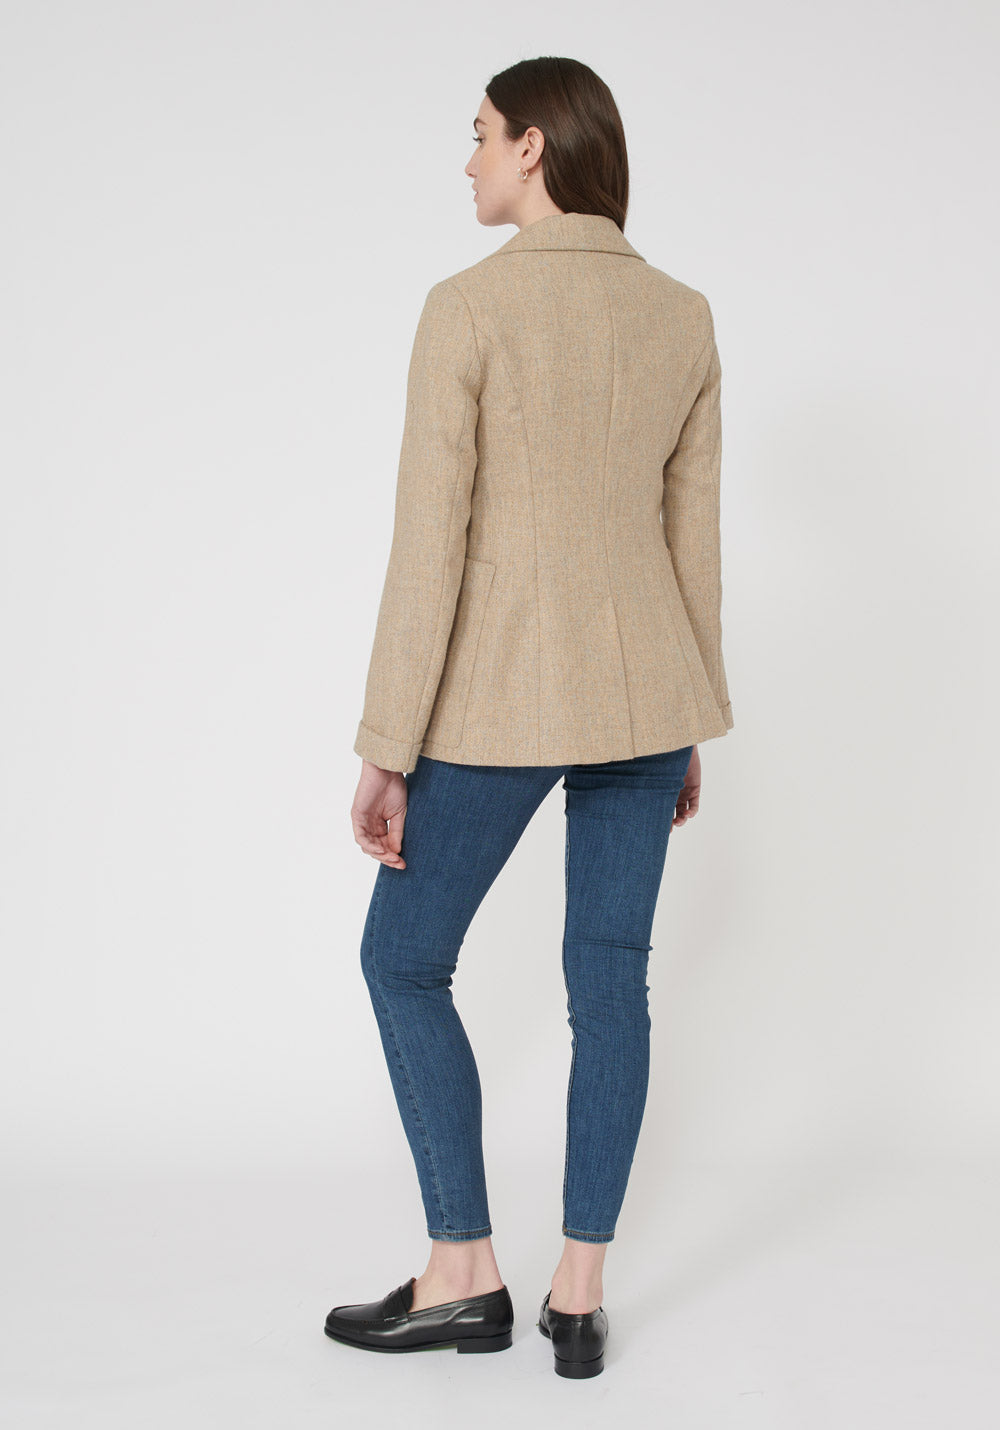 Artist Jacket | Pebble Peach Wool back view